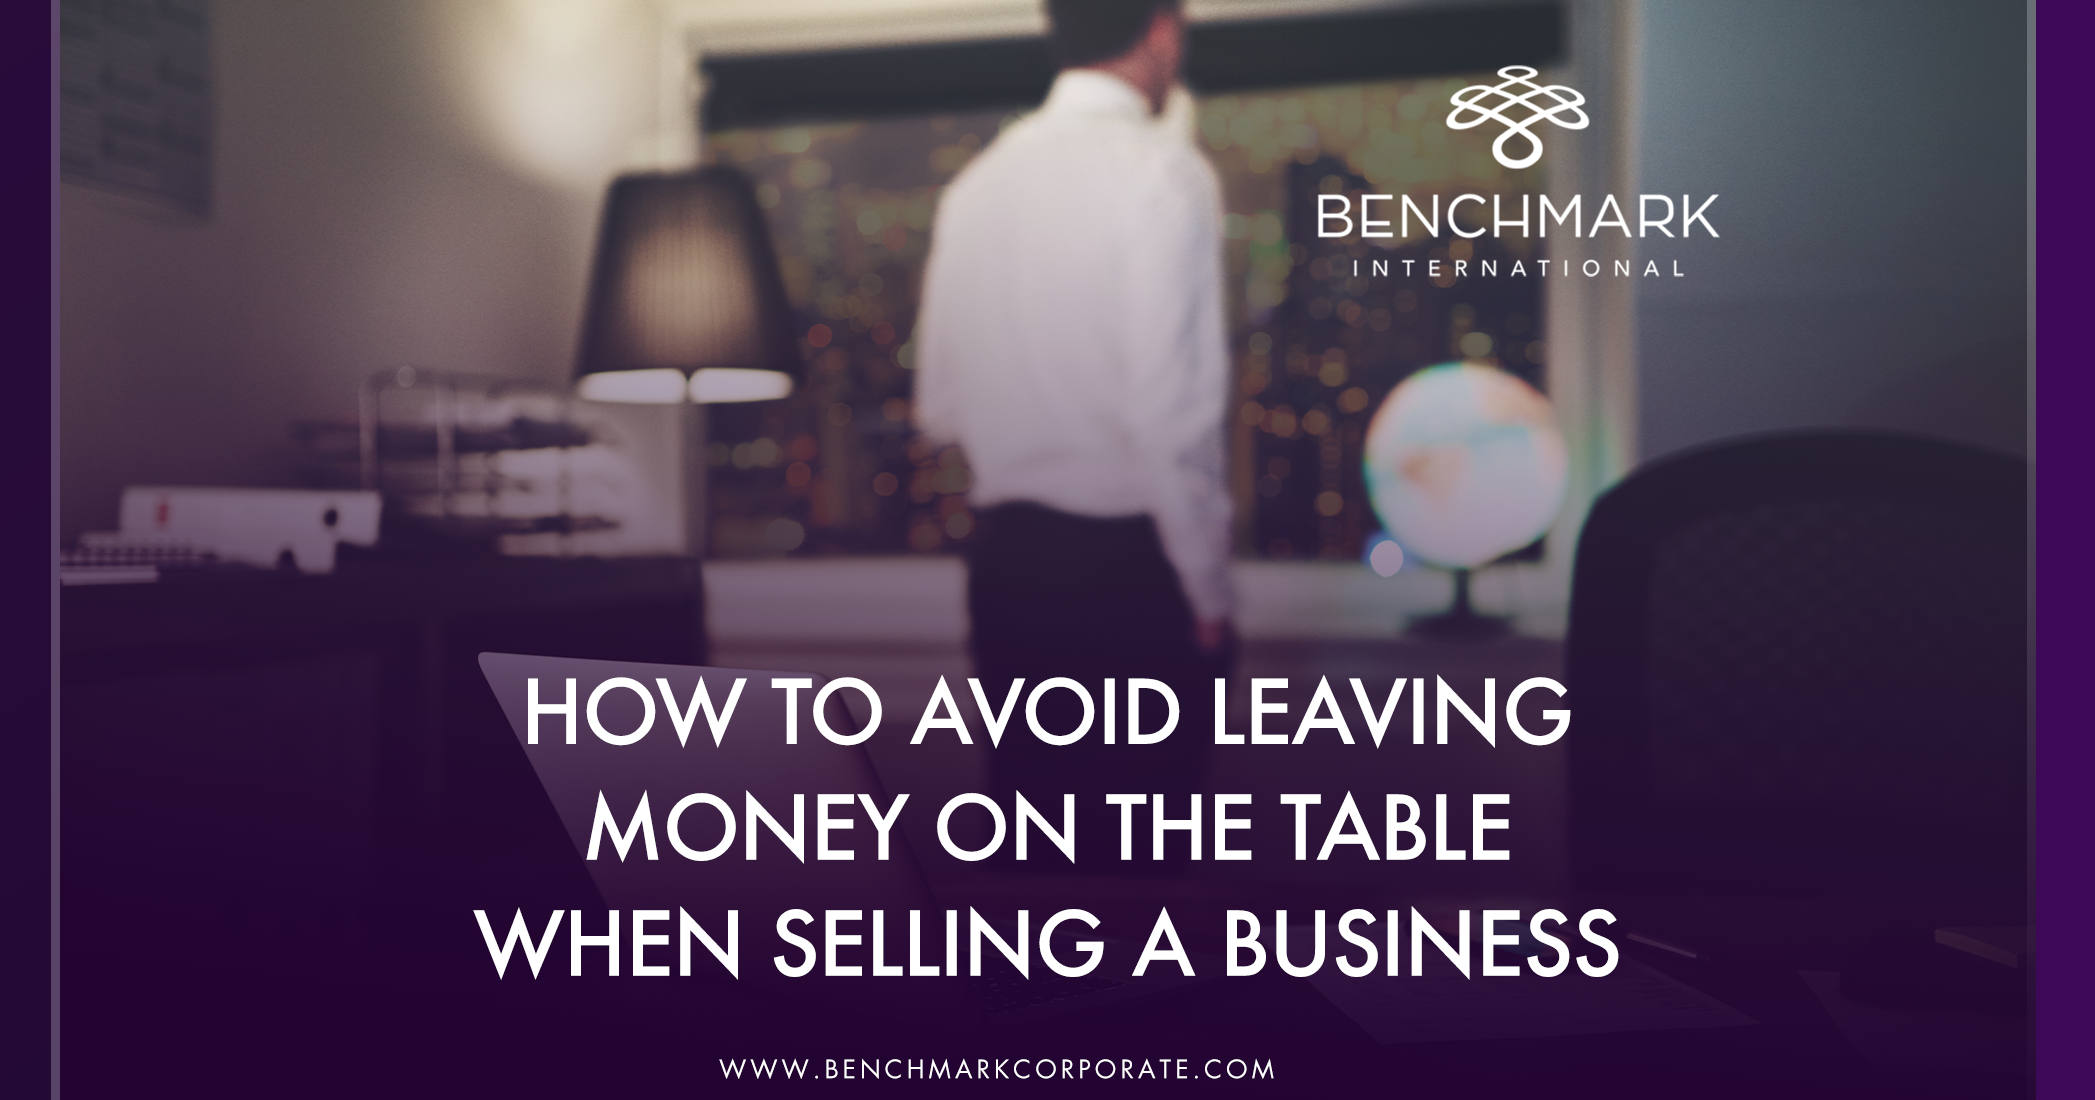 How to Avoid Leaving Money on the Table When Selling a Business